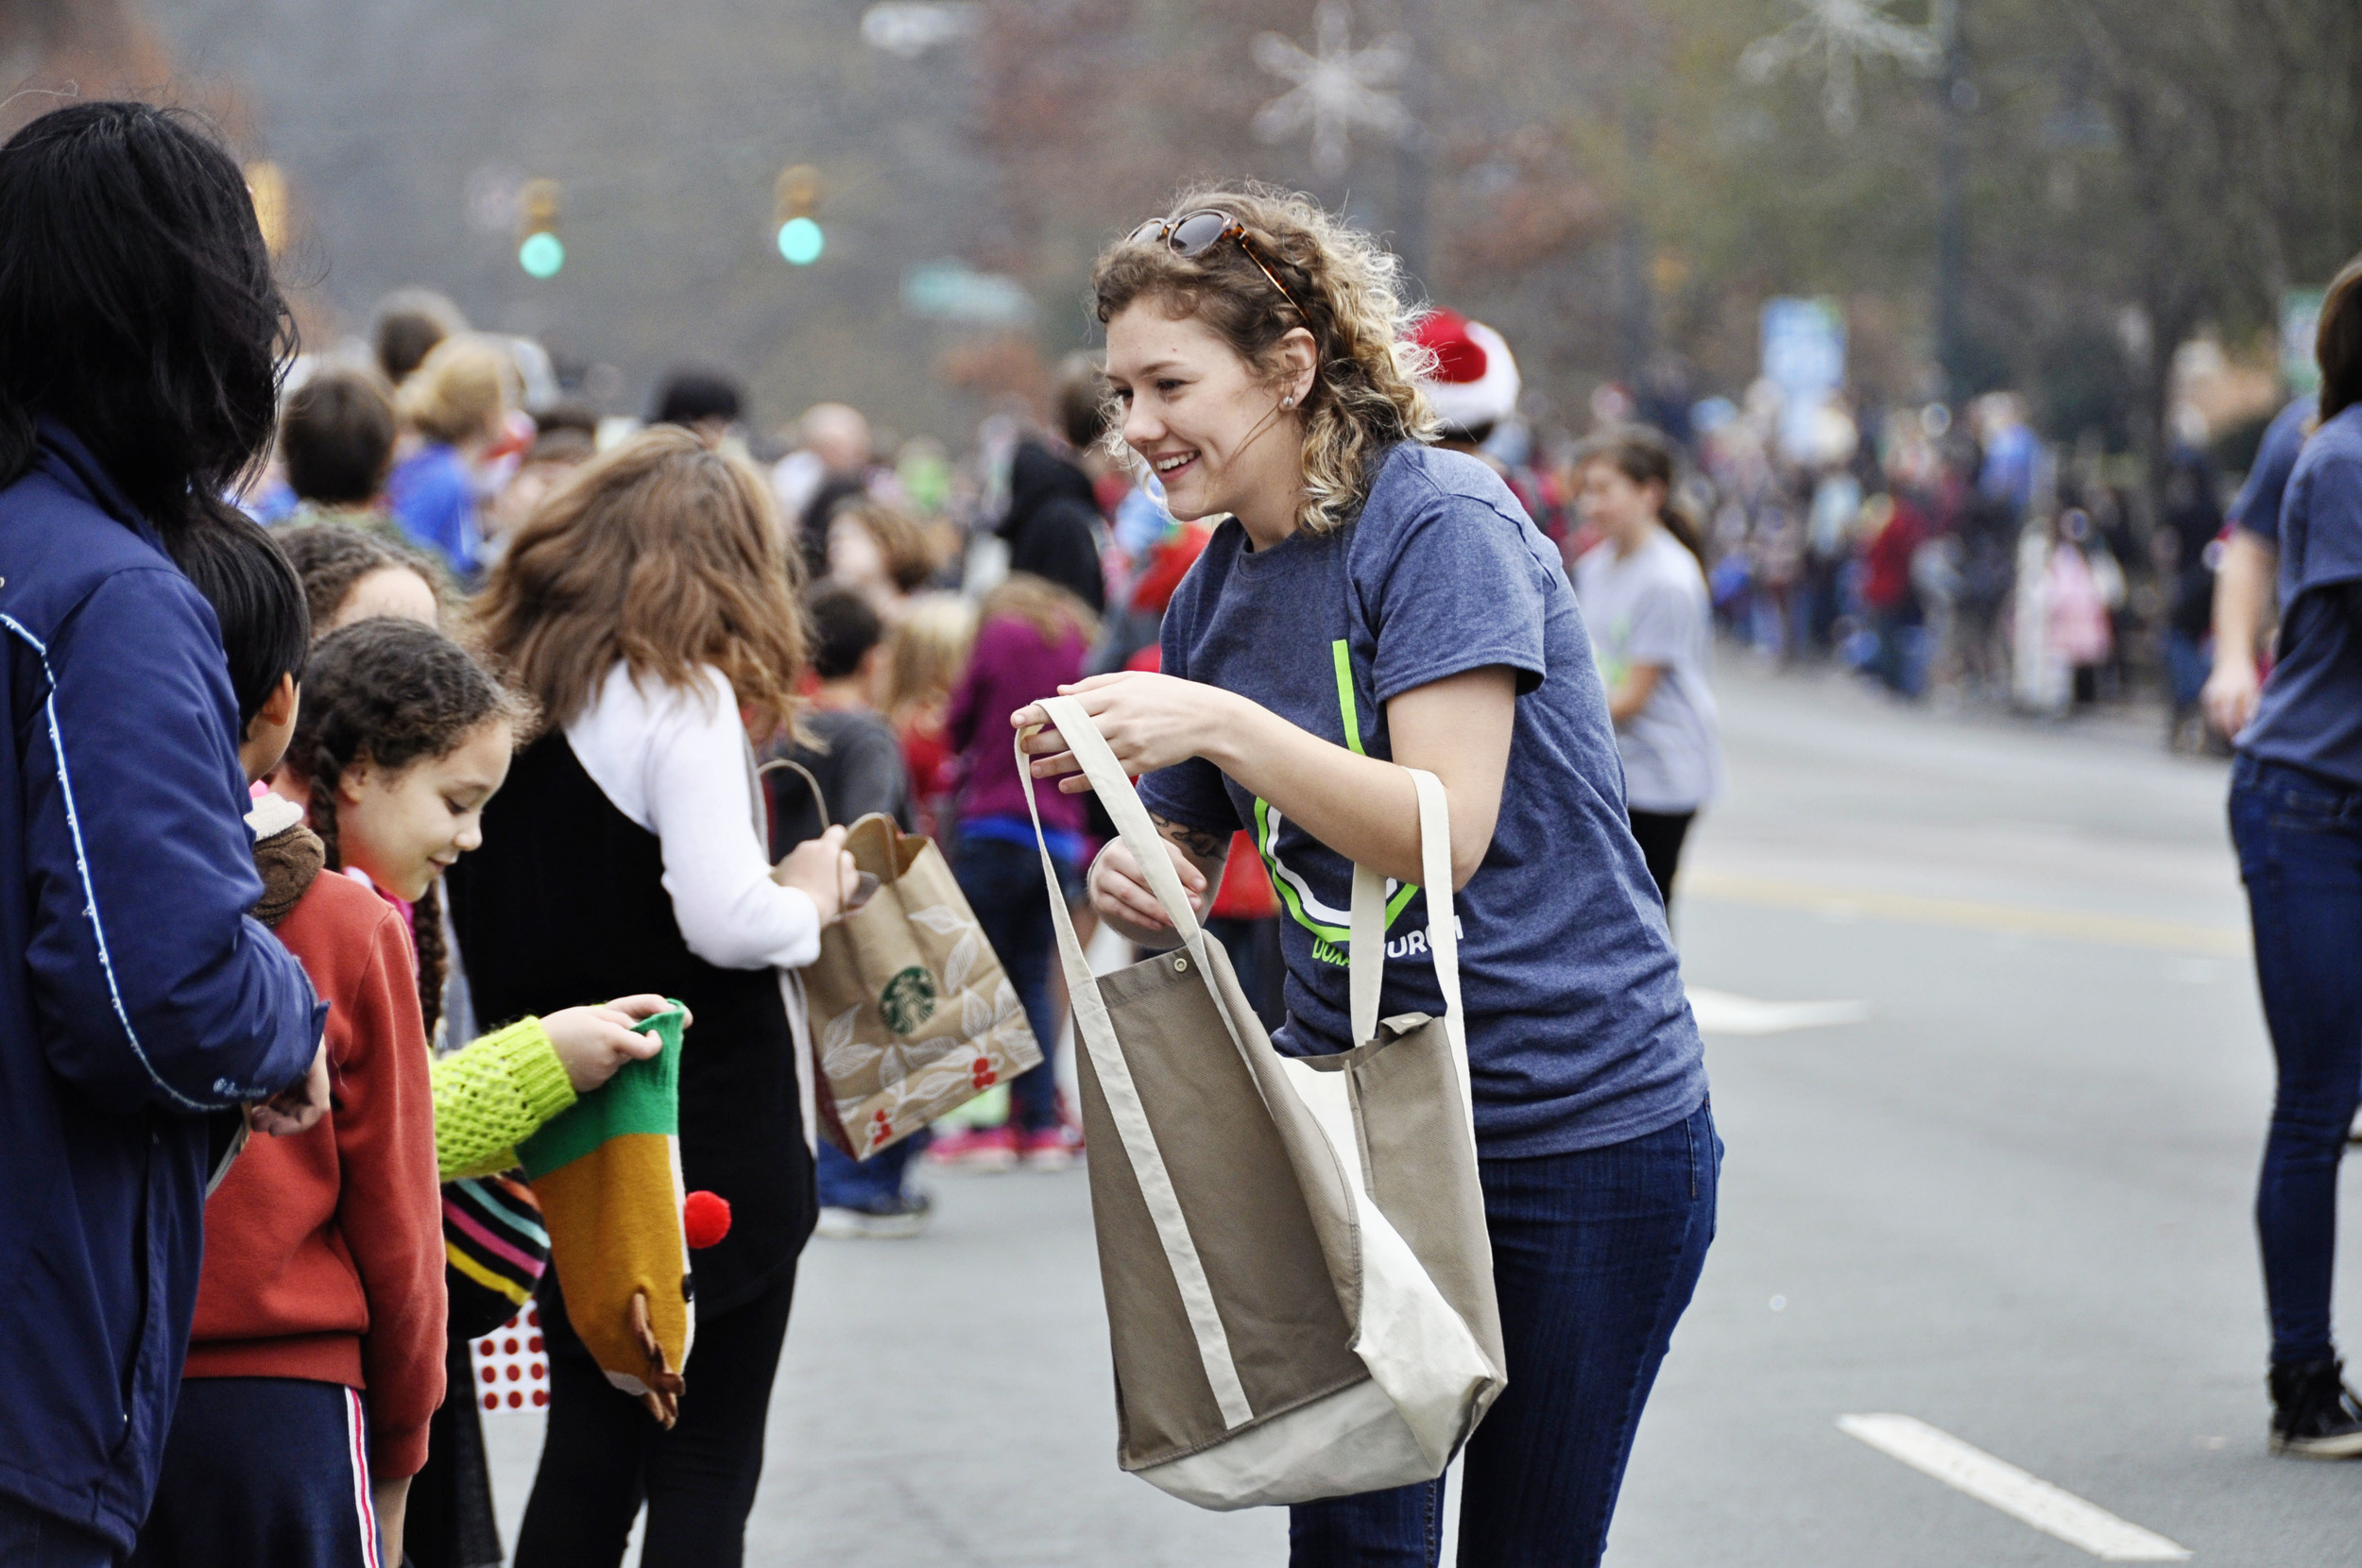 Chapel Hill-Carrboro parade -25.jpg